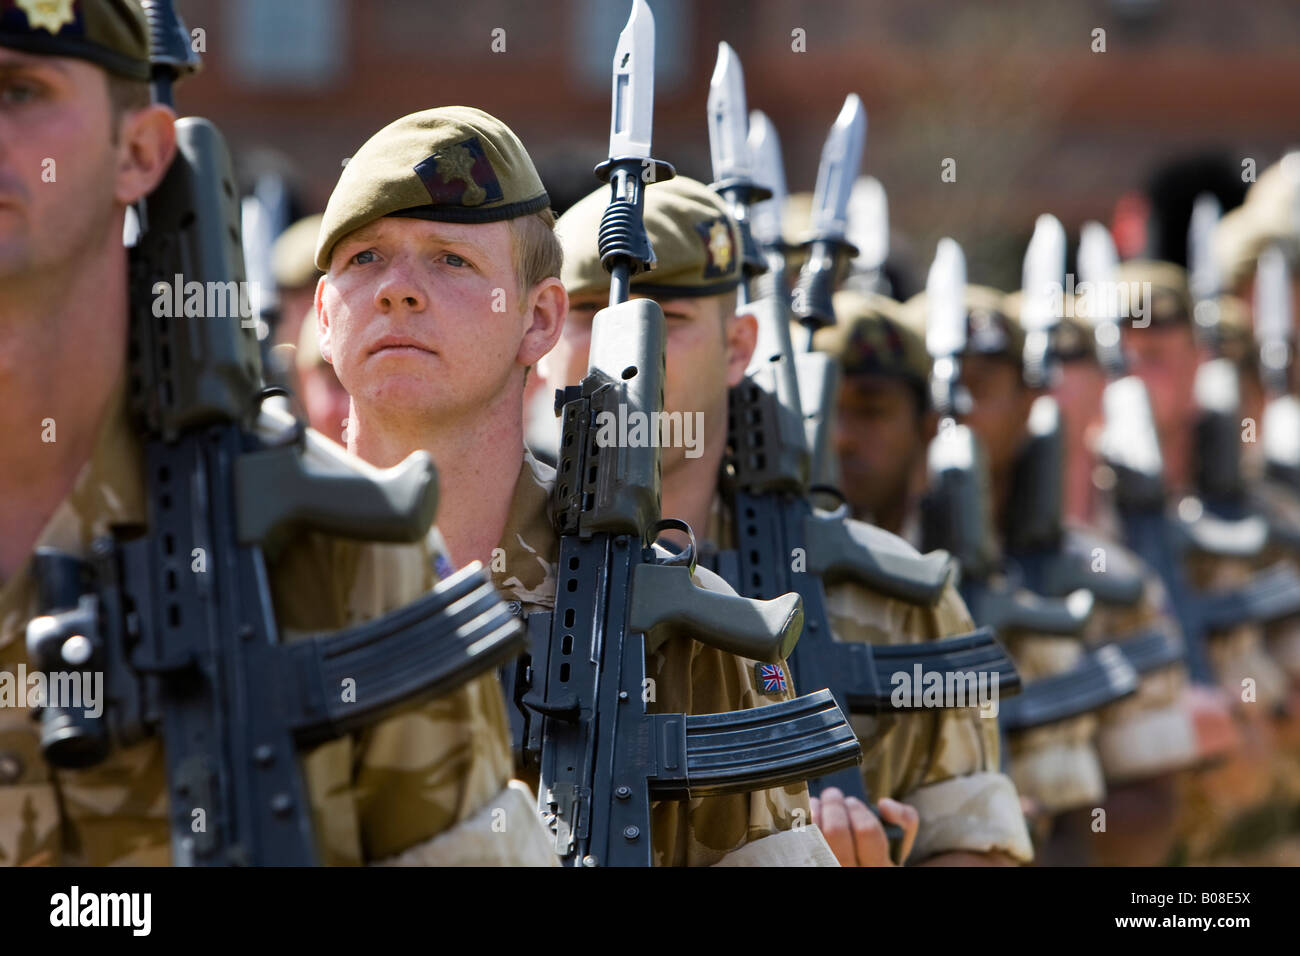 British Army 1st Battalion the Coldstream Guards in desert fatigues with bayonets fitted to their guns - Stock Image